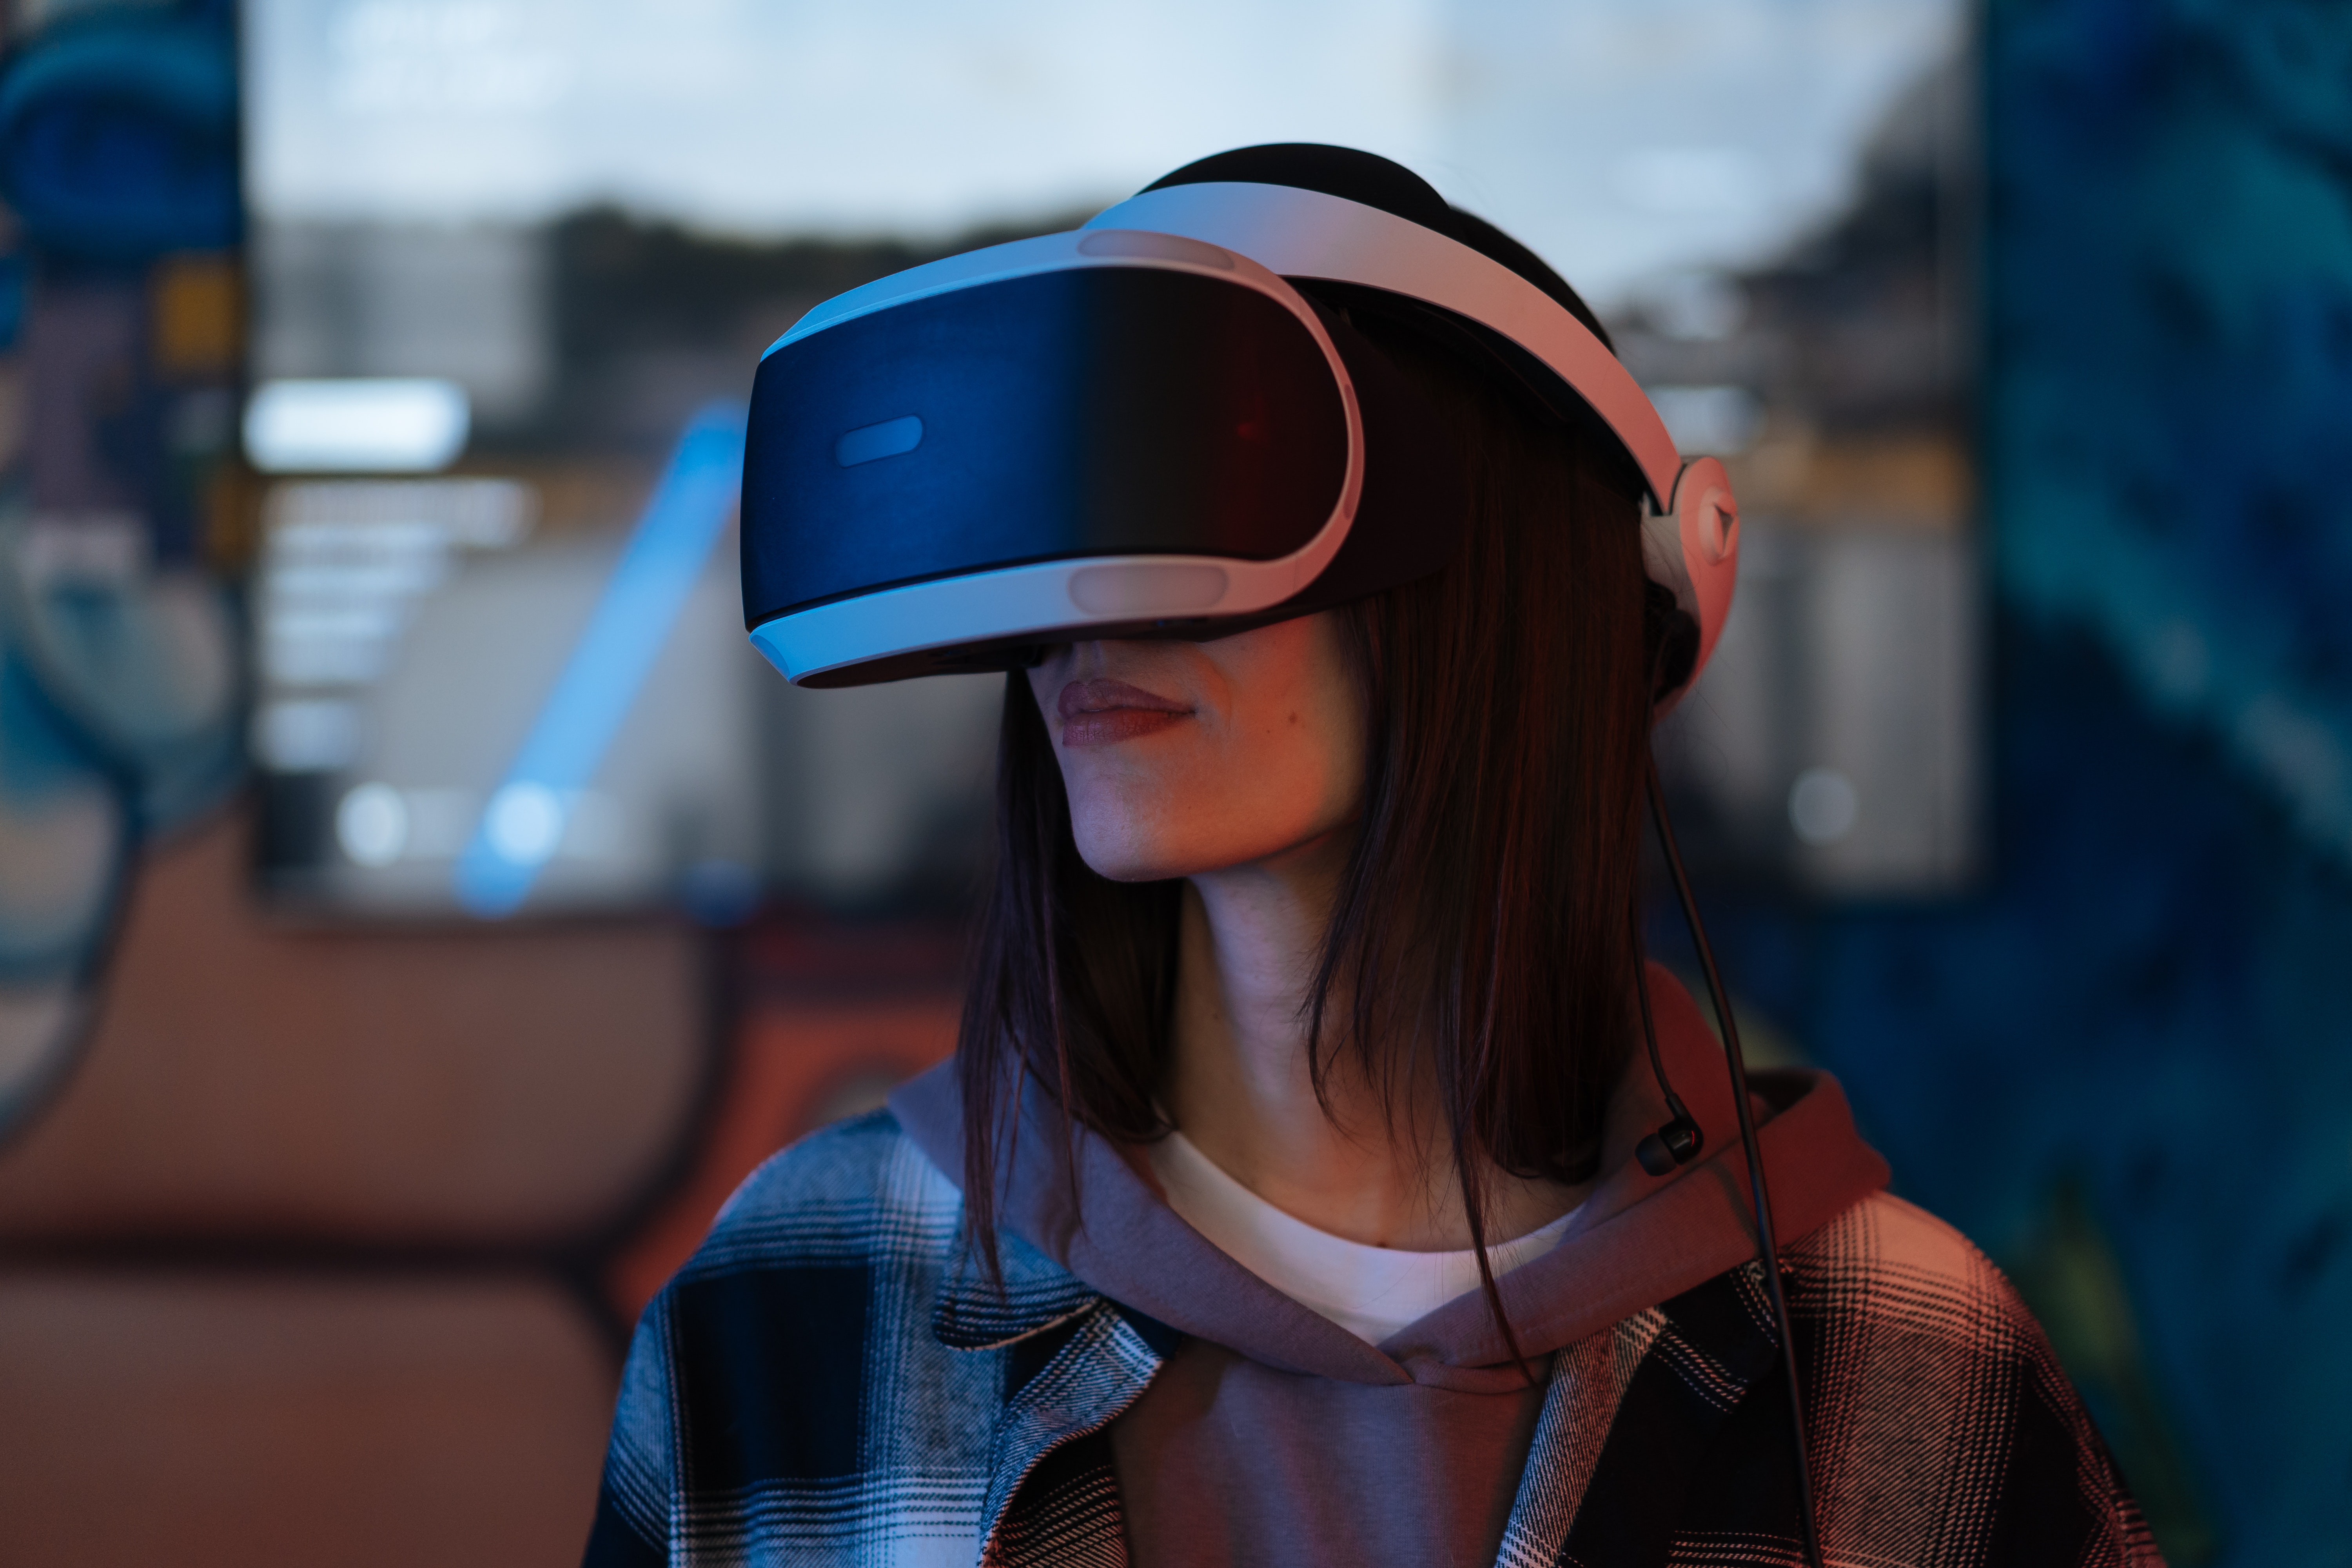 Facebook Plans to Rebrand and Hire to Emphasize the Metaverse